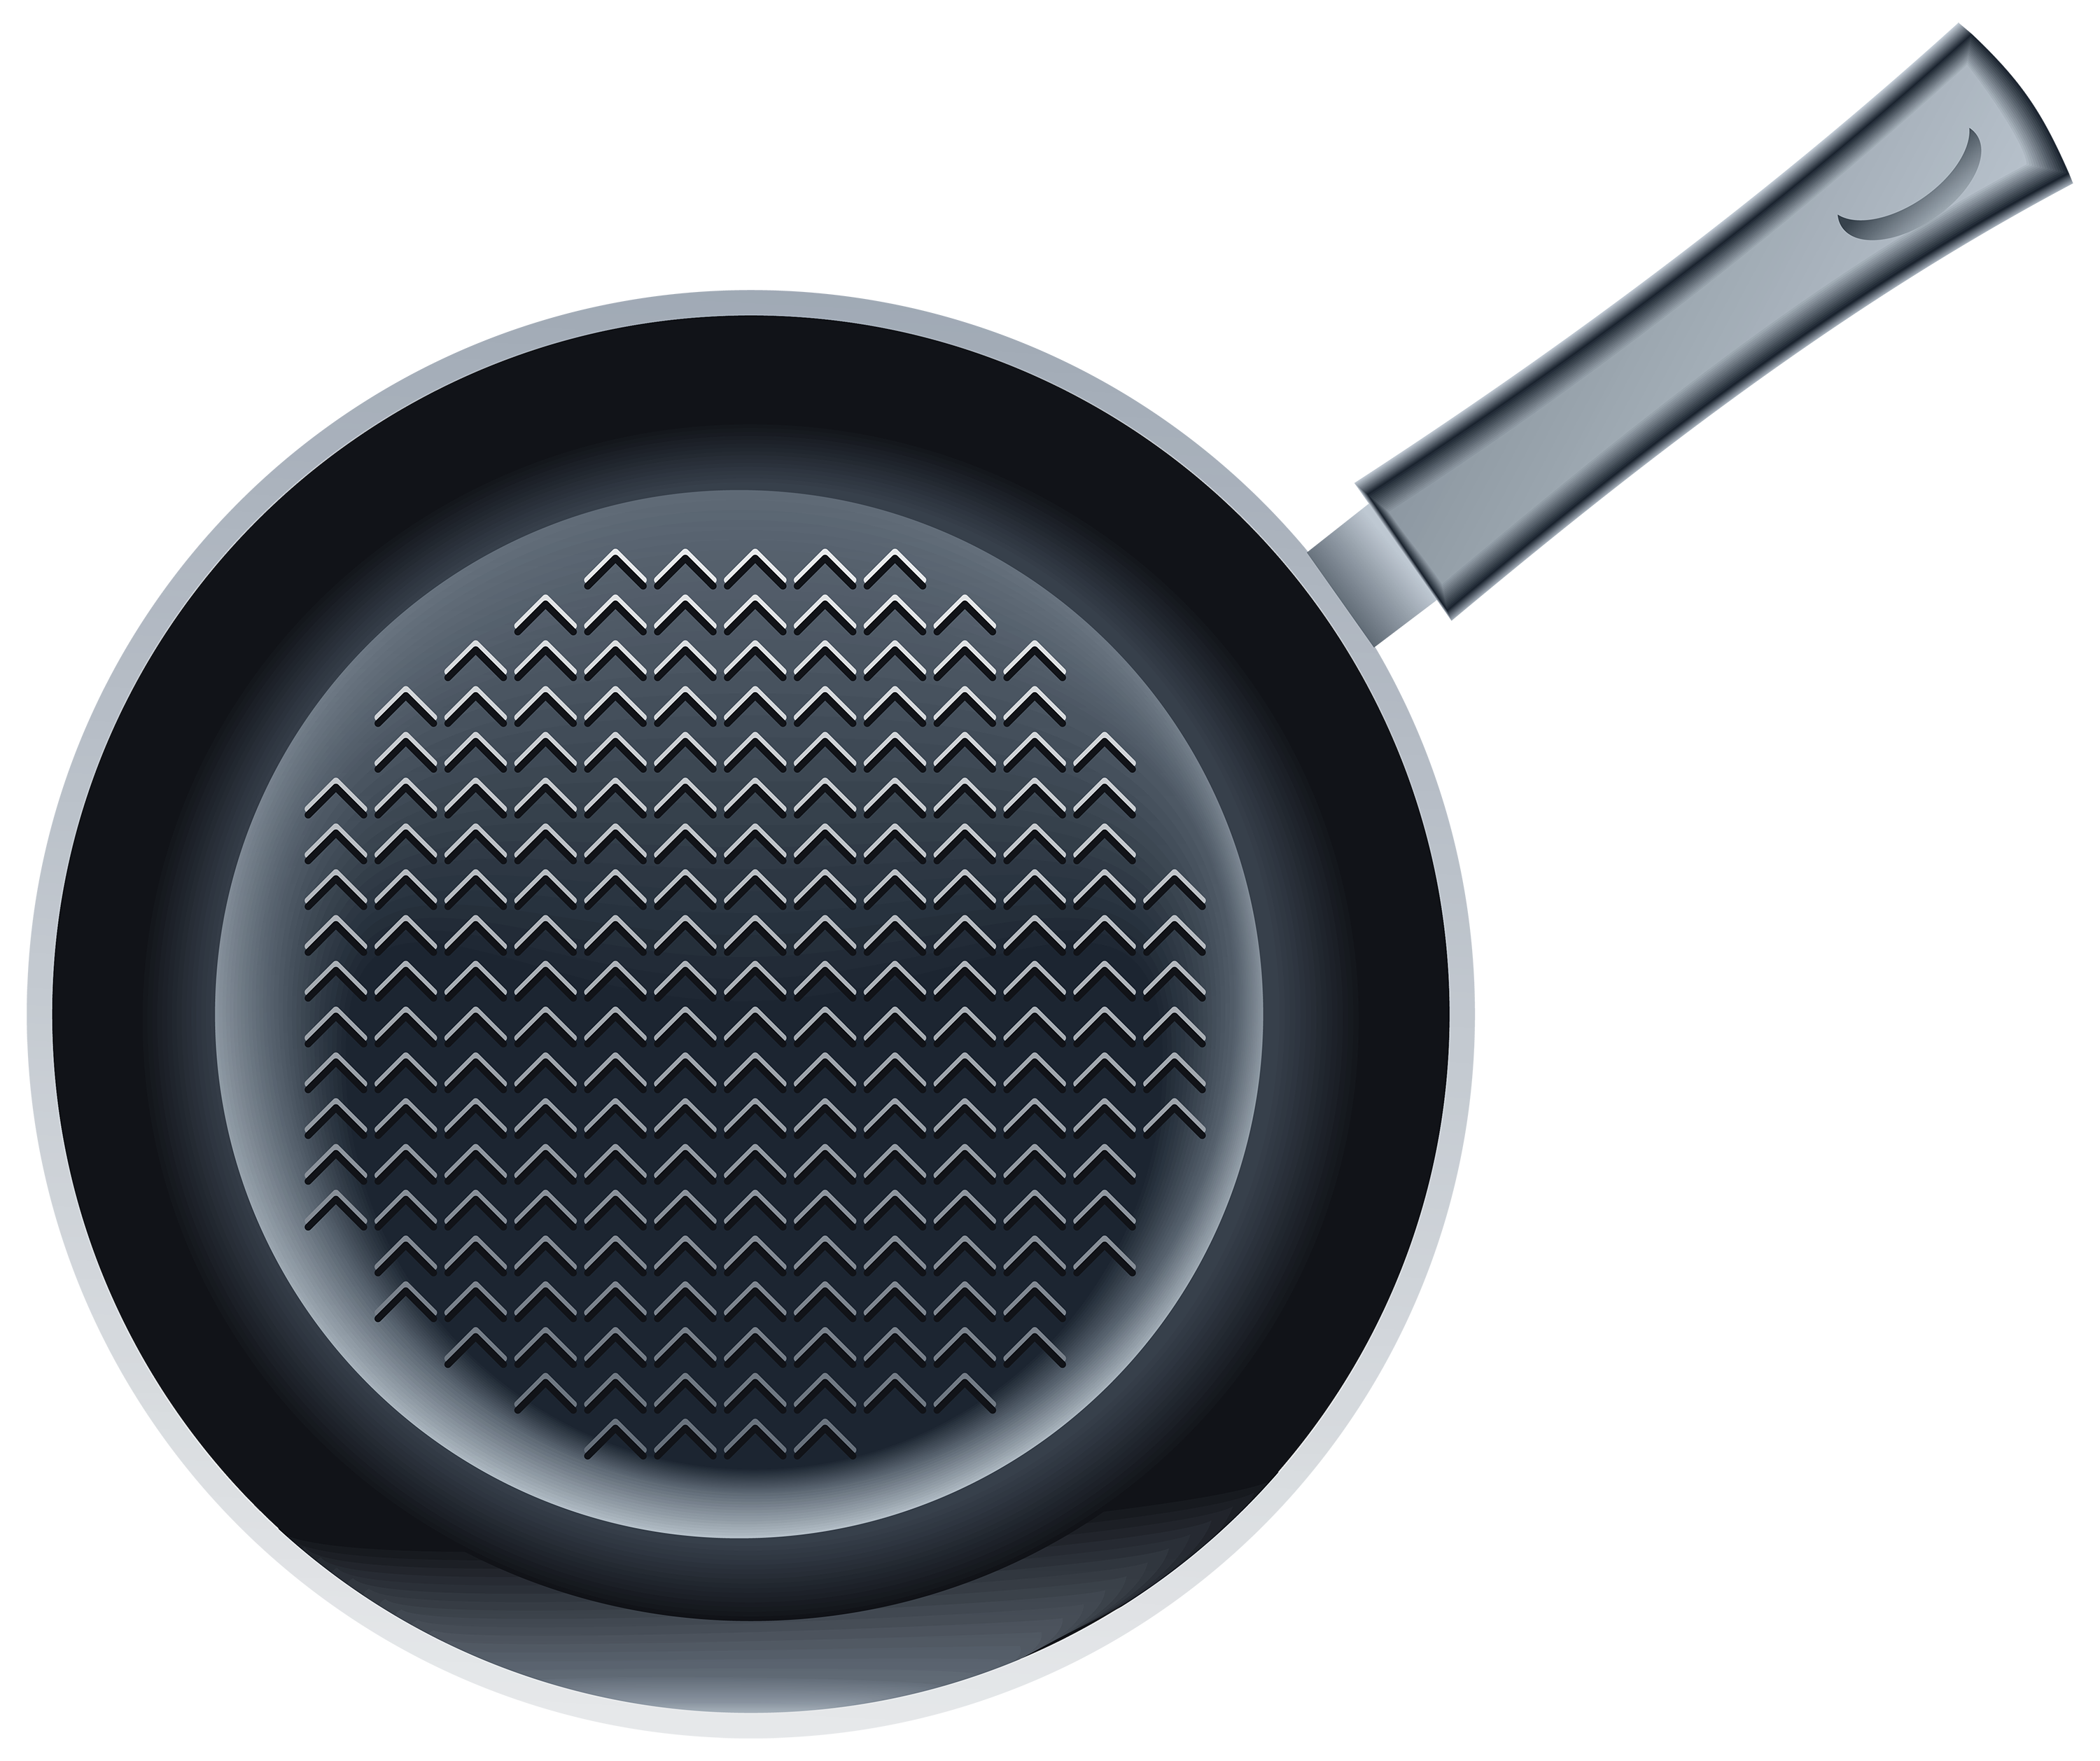 Fish in frying pan clipart banner transparent download Frying Pan PNG Clipart Image - Best WEB Clipart banner transparent download